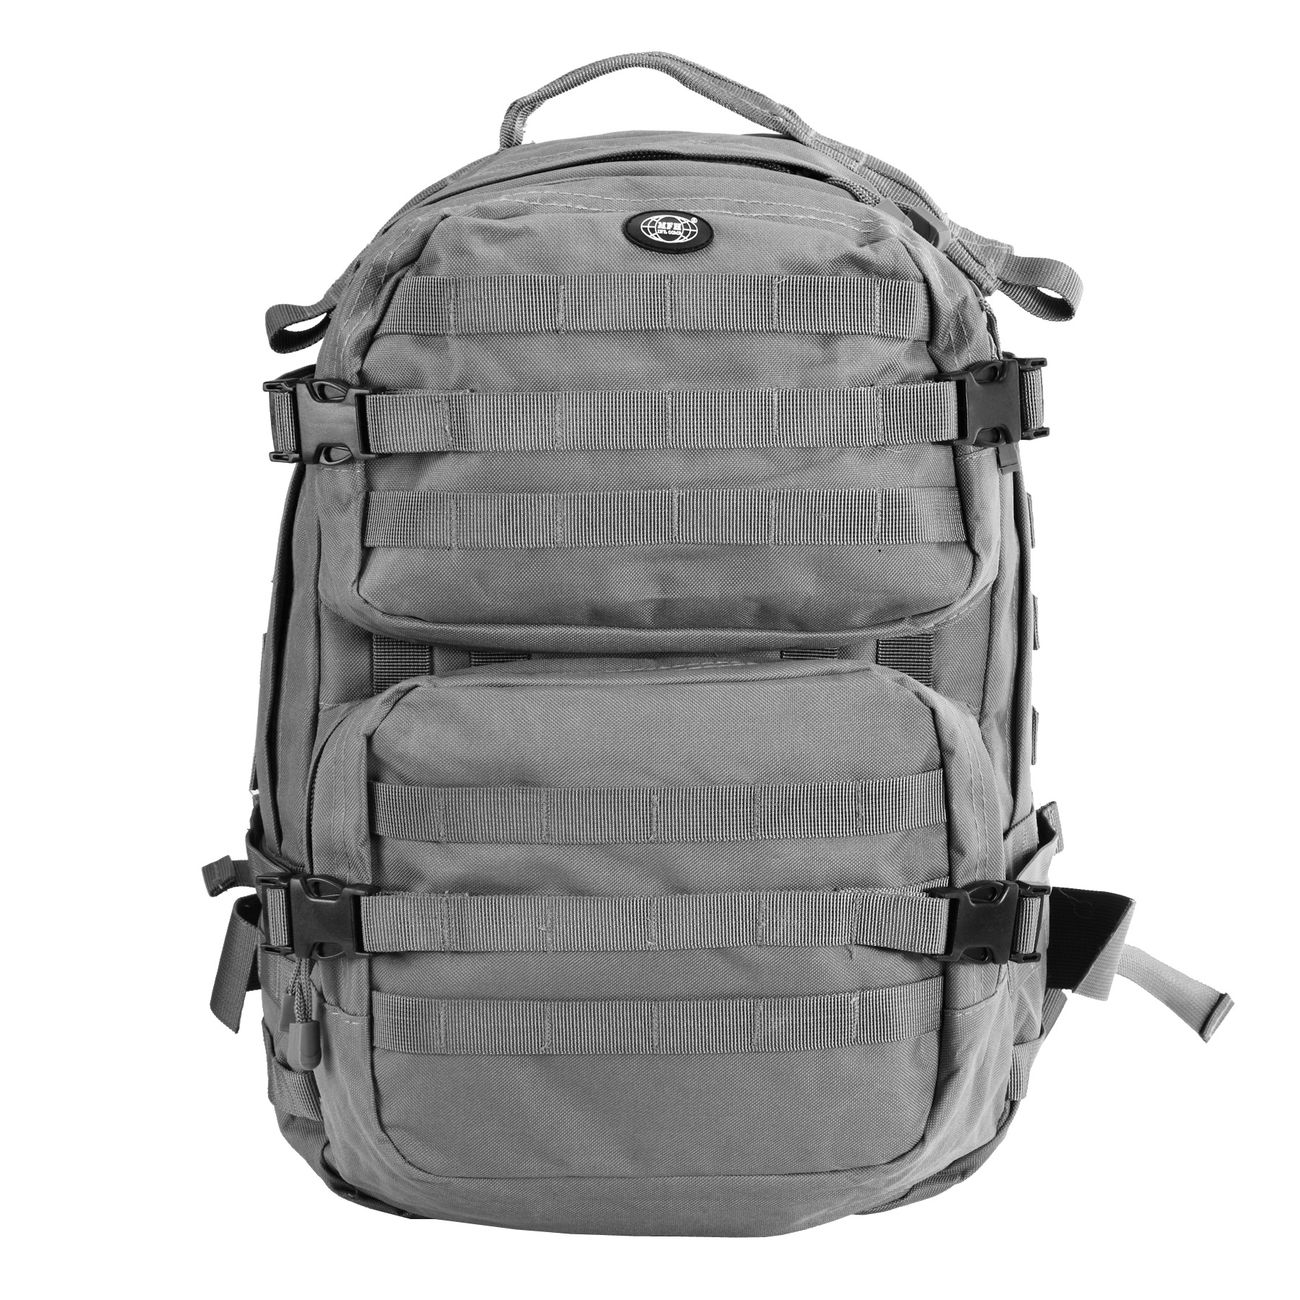 MFH Rucksack US Assault II foliage 1